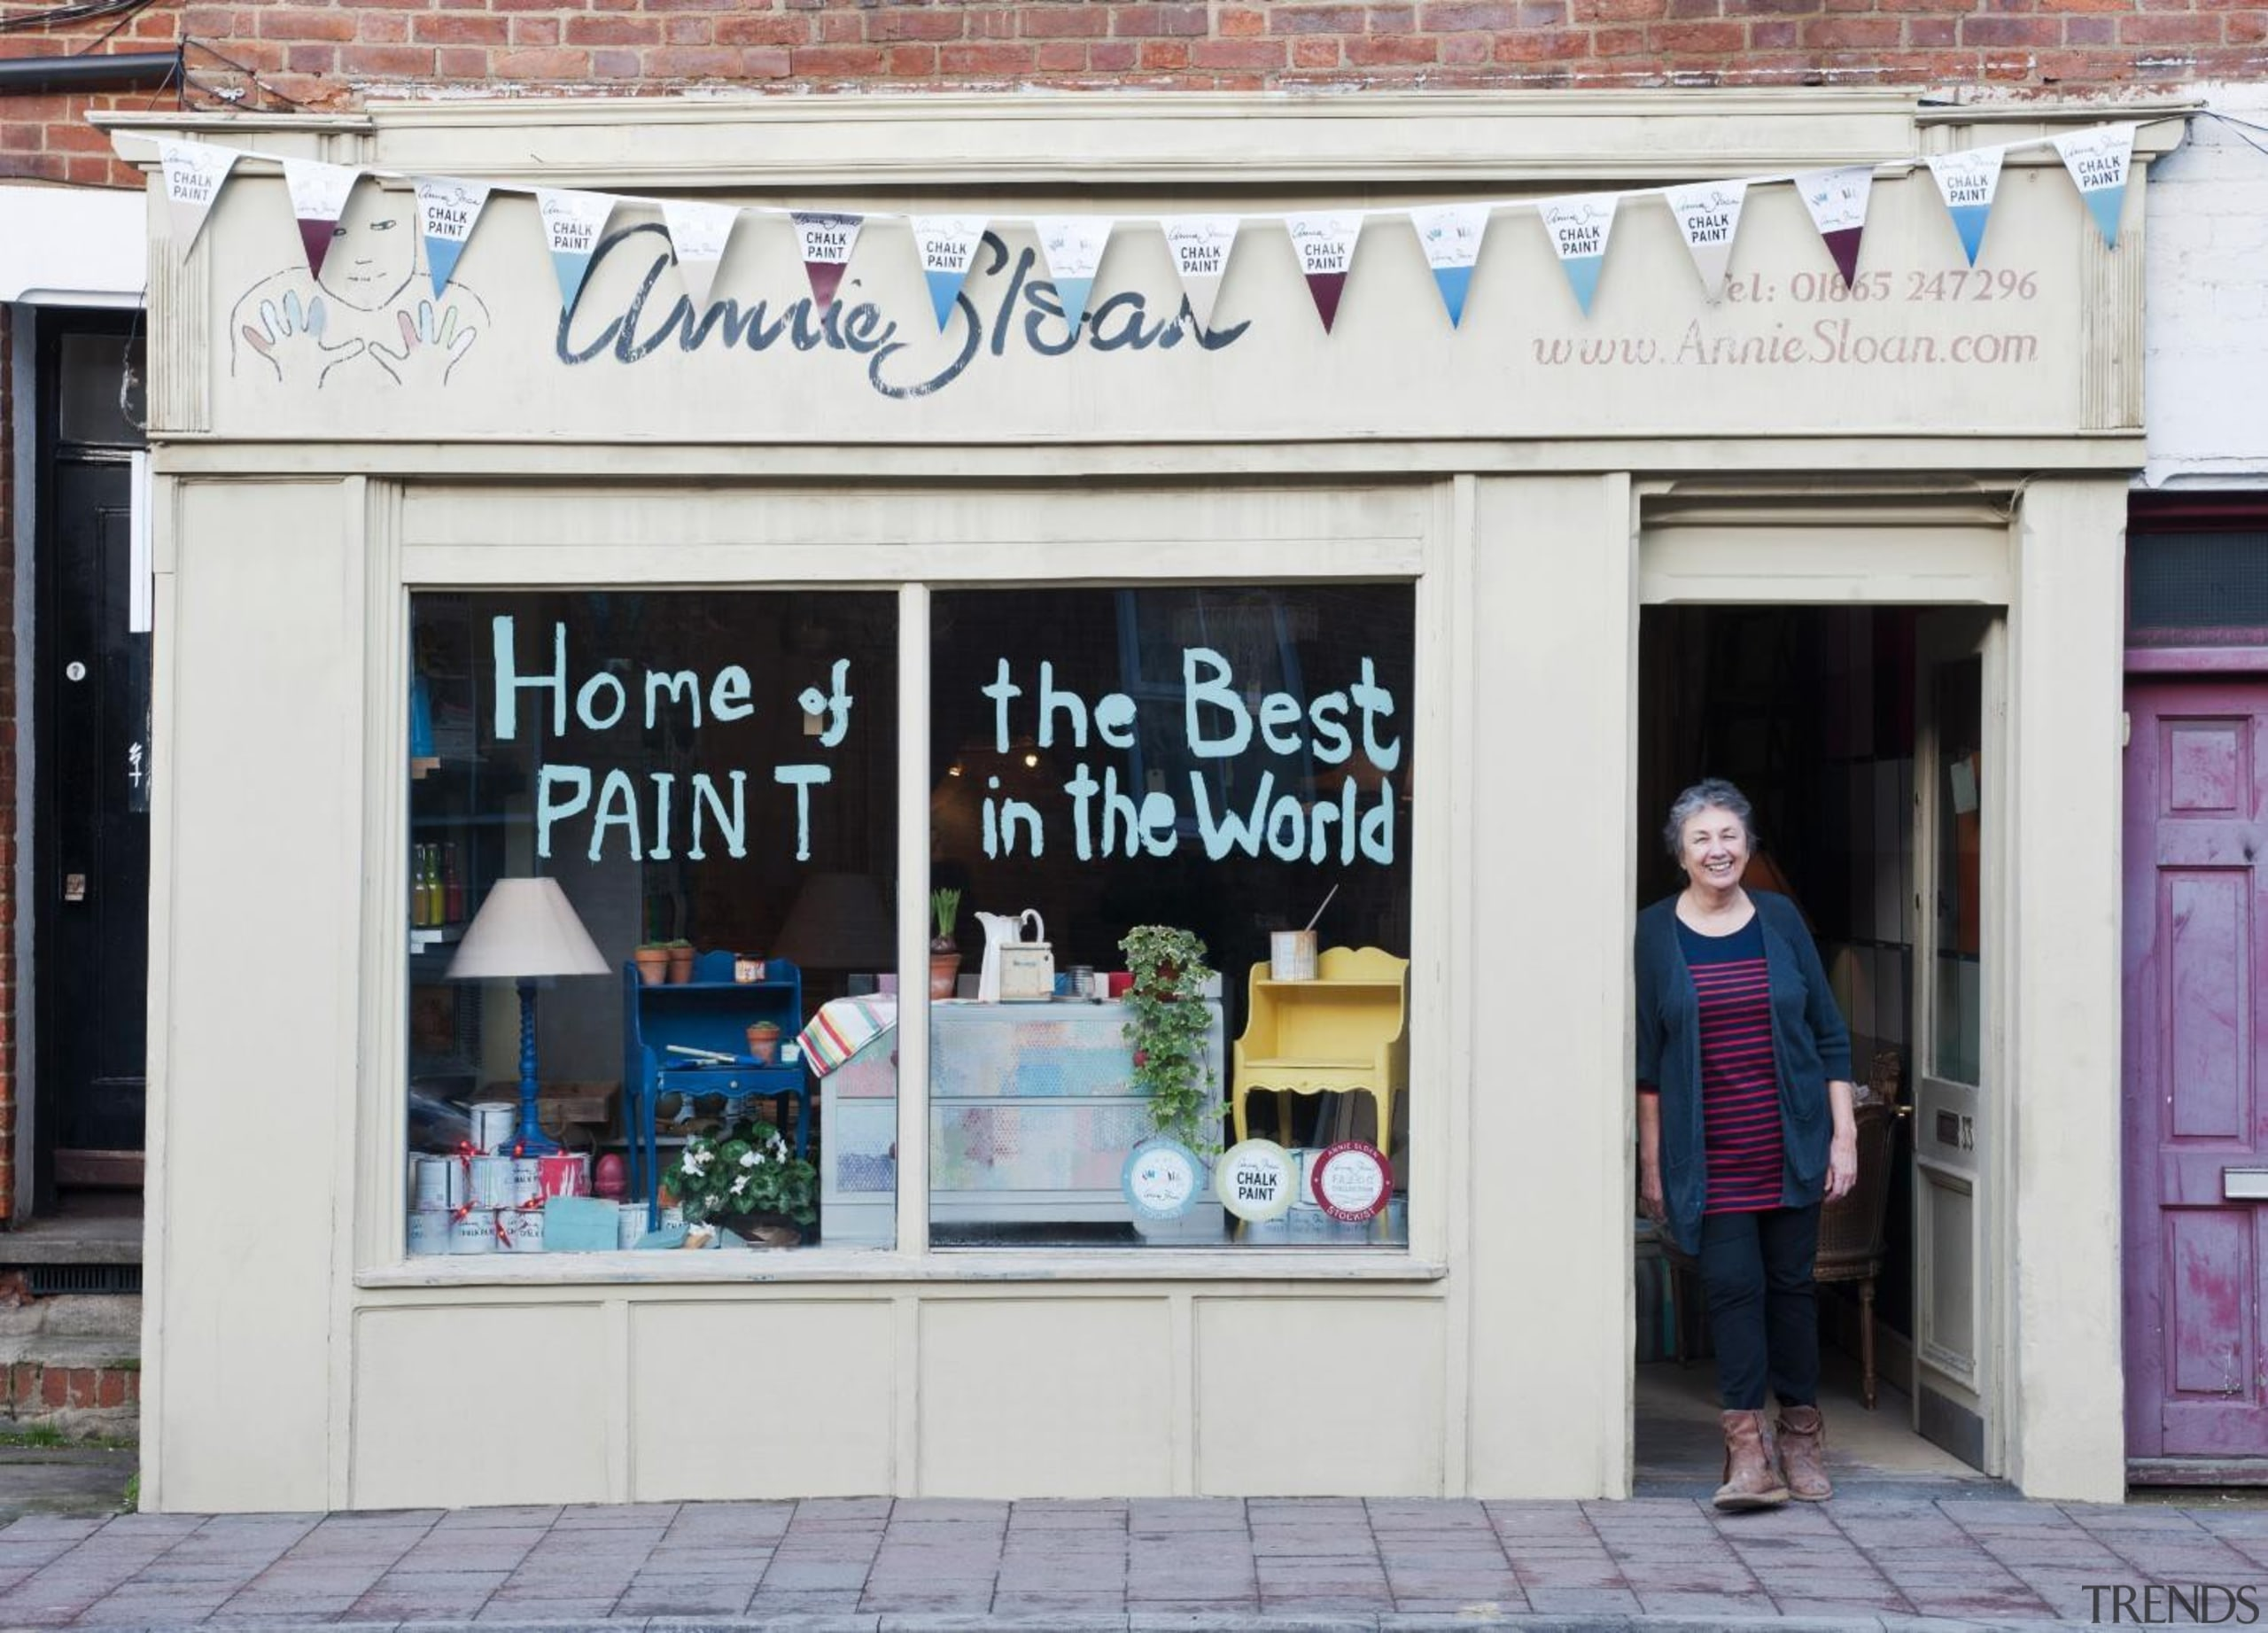 Known to many as the 'Queen of Paint', facade, retail, shopping, window, white, gray